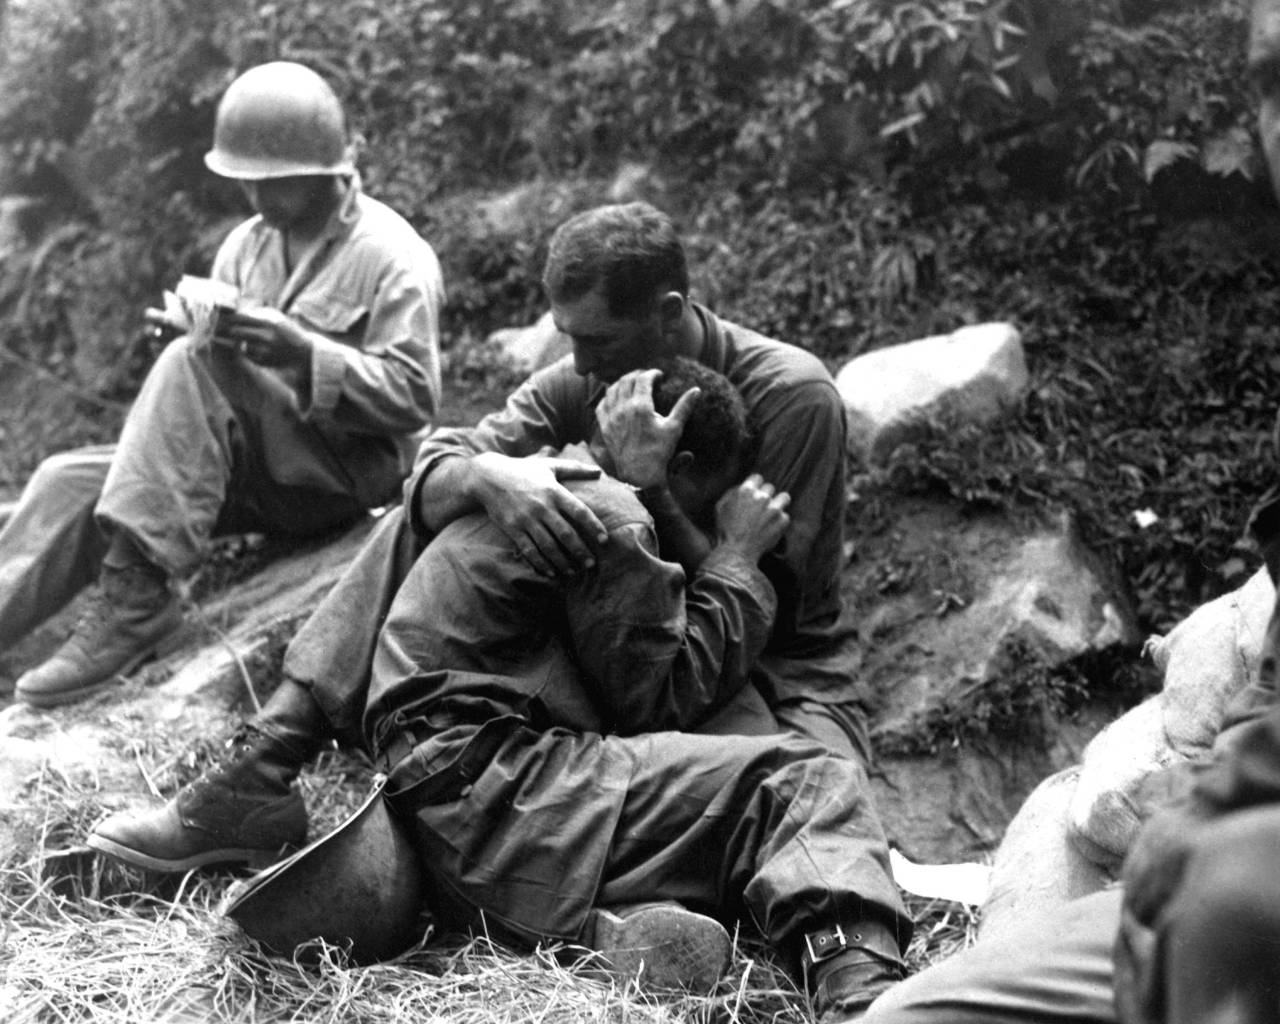 collectivehistory:  A grief stricken American infantryman being comforted by another soldier. In the background a corpsman methodically fills out casualty tags, Haktong-ni area, Korea. August 28, 1950